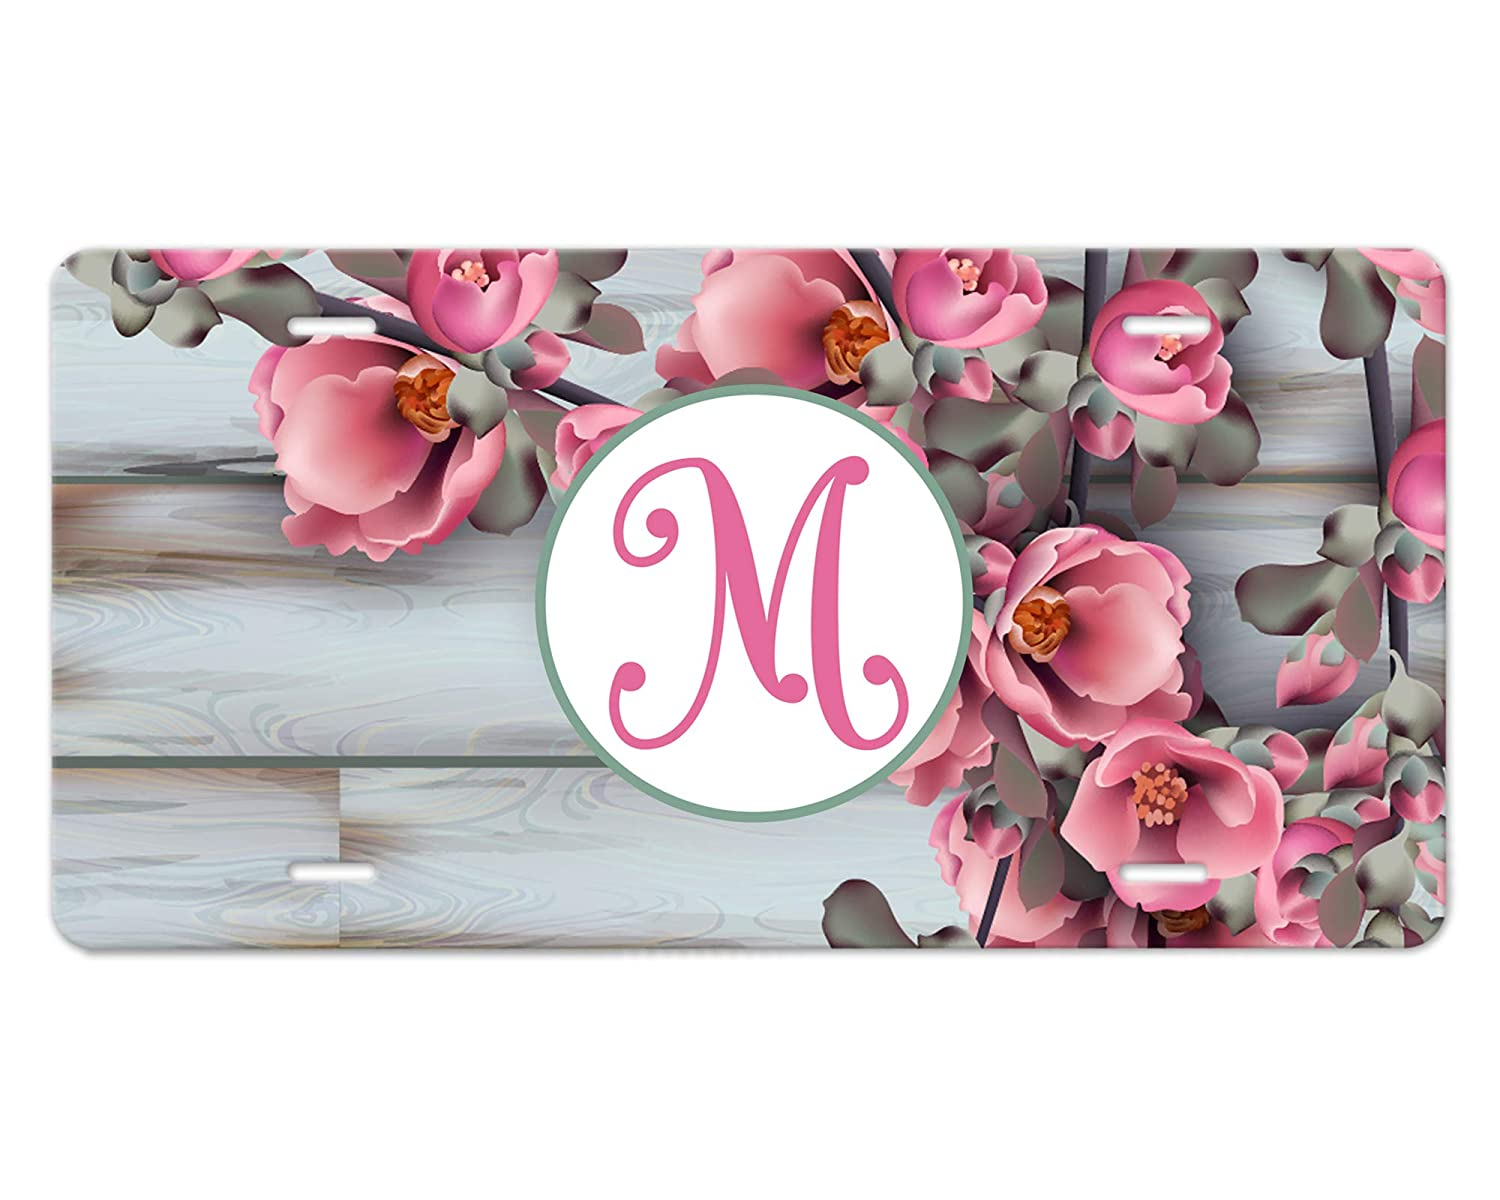 Custom Monogram Car Plate Reservation Cherry Blossom on Wood New Shipping Free